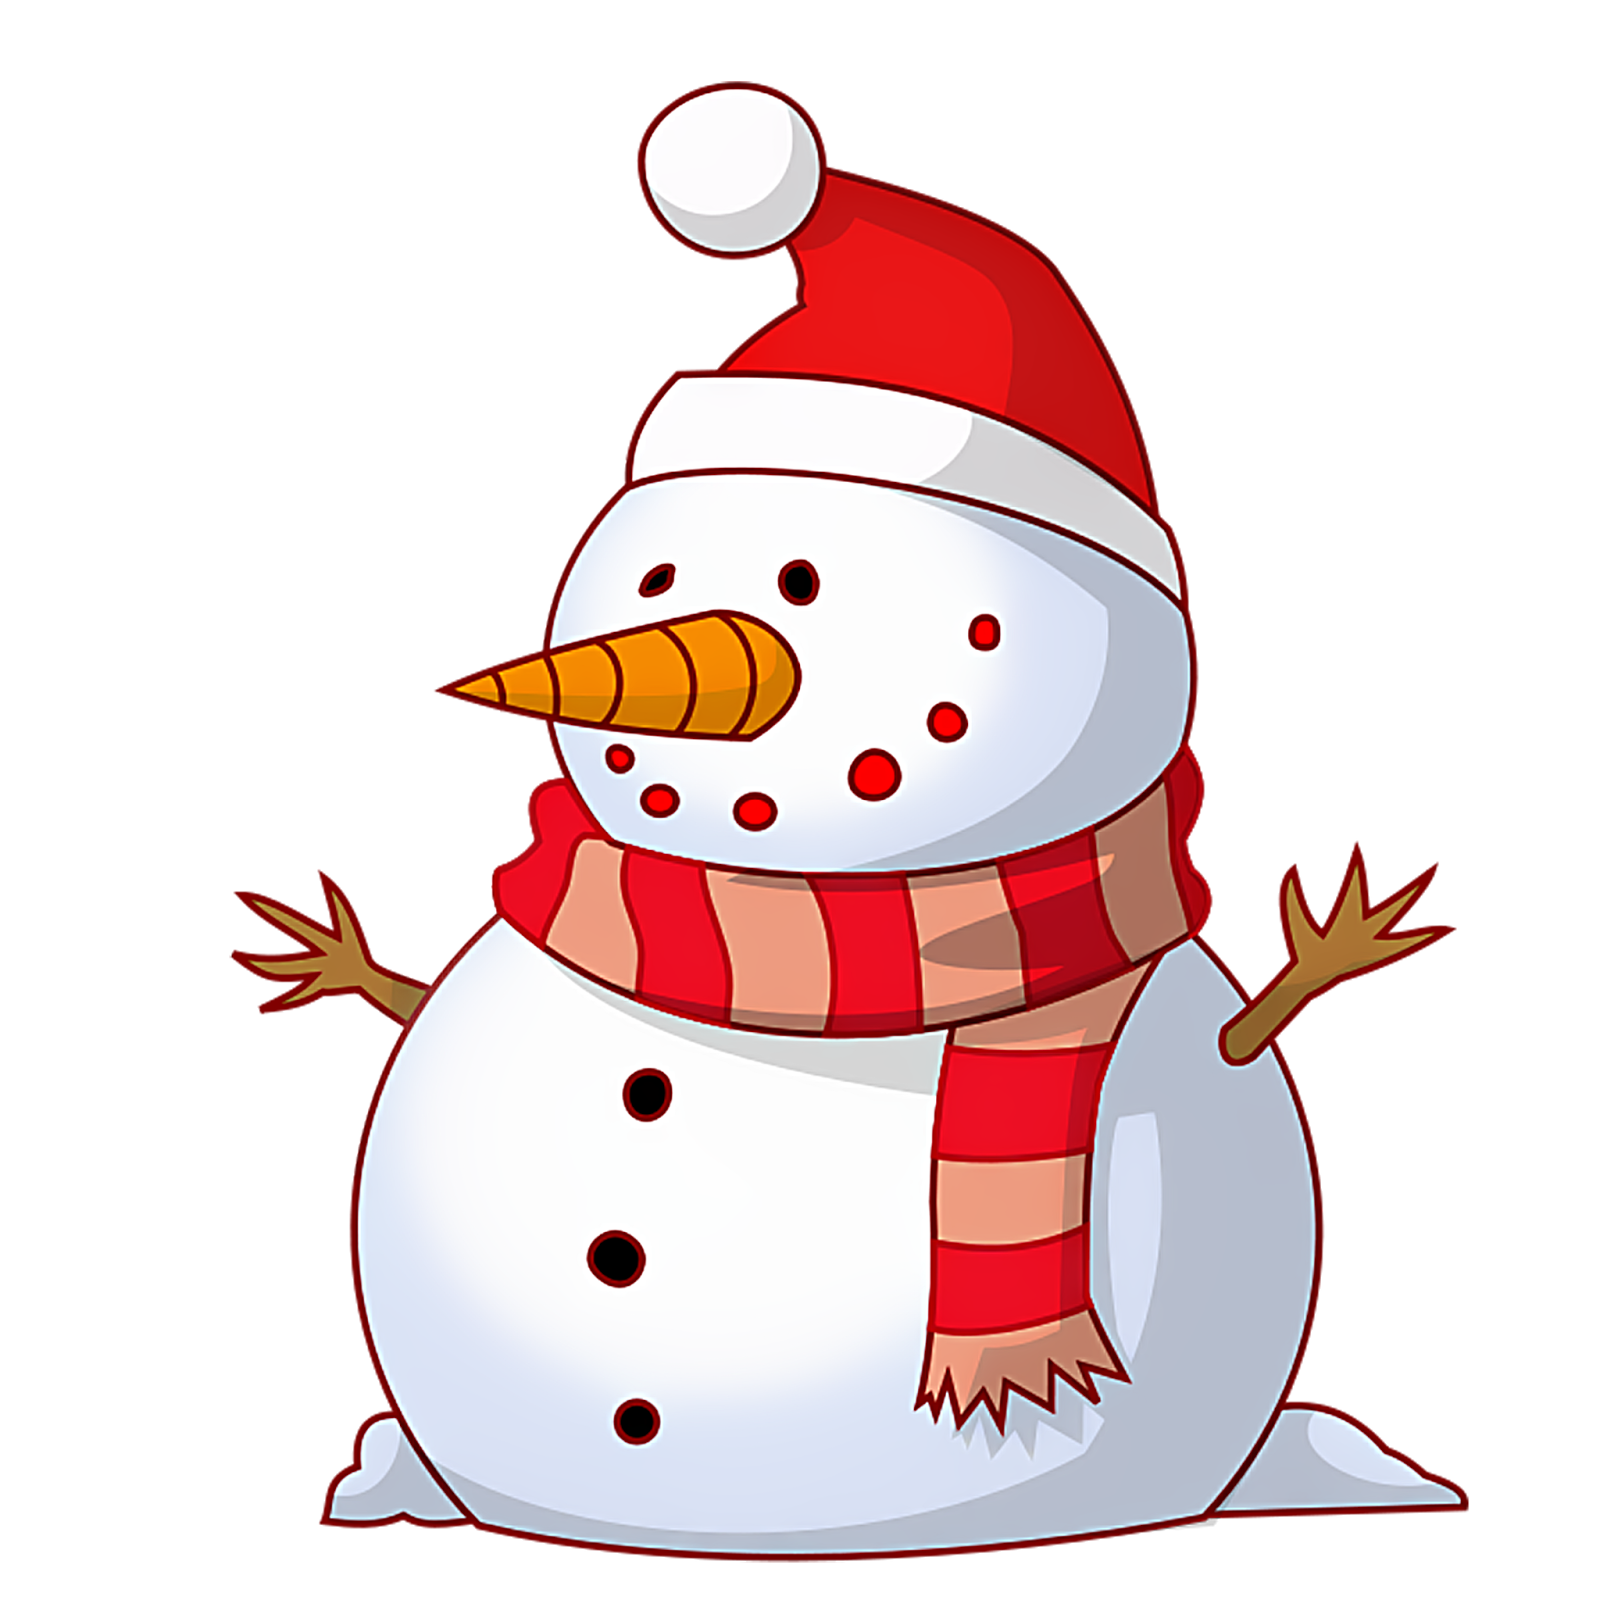 Merry Christmas clipart high resolution Christmas Images Clip Free Free